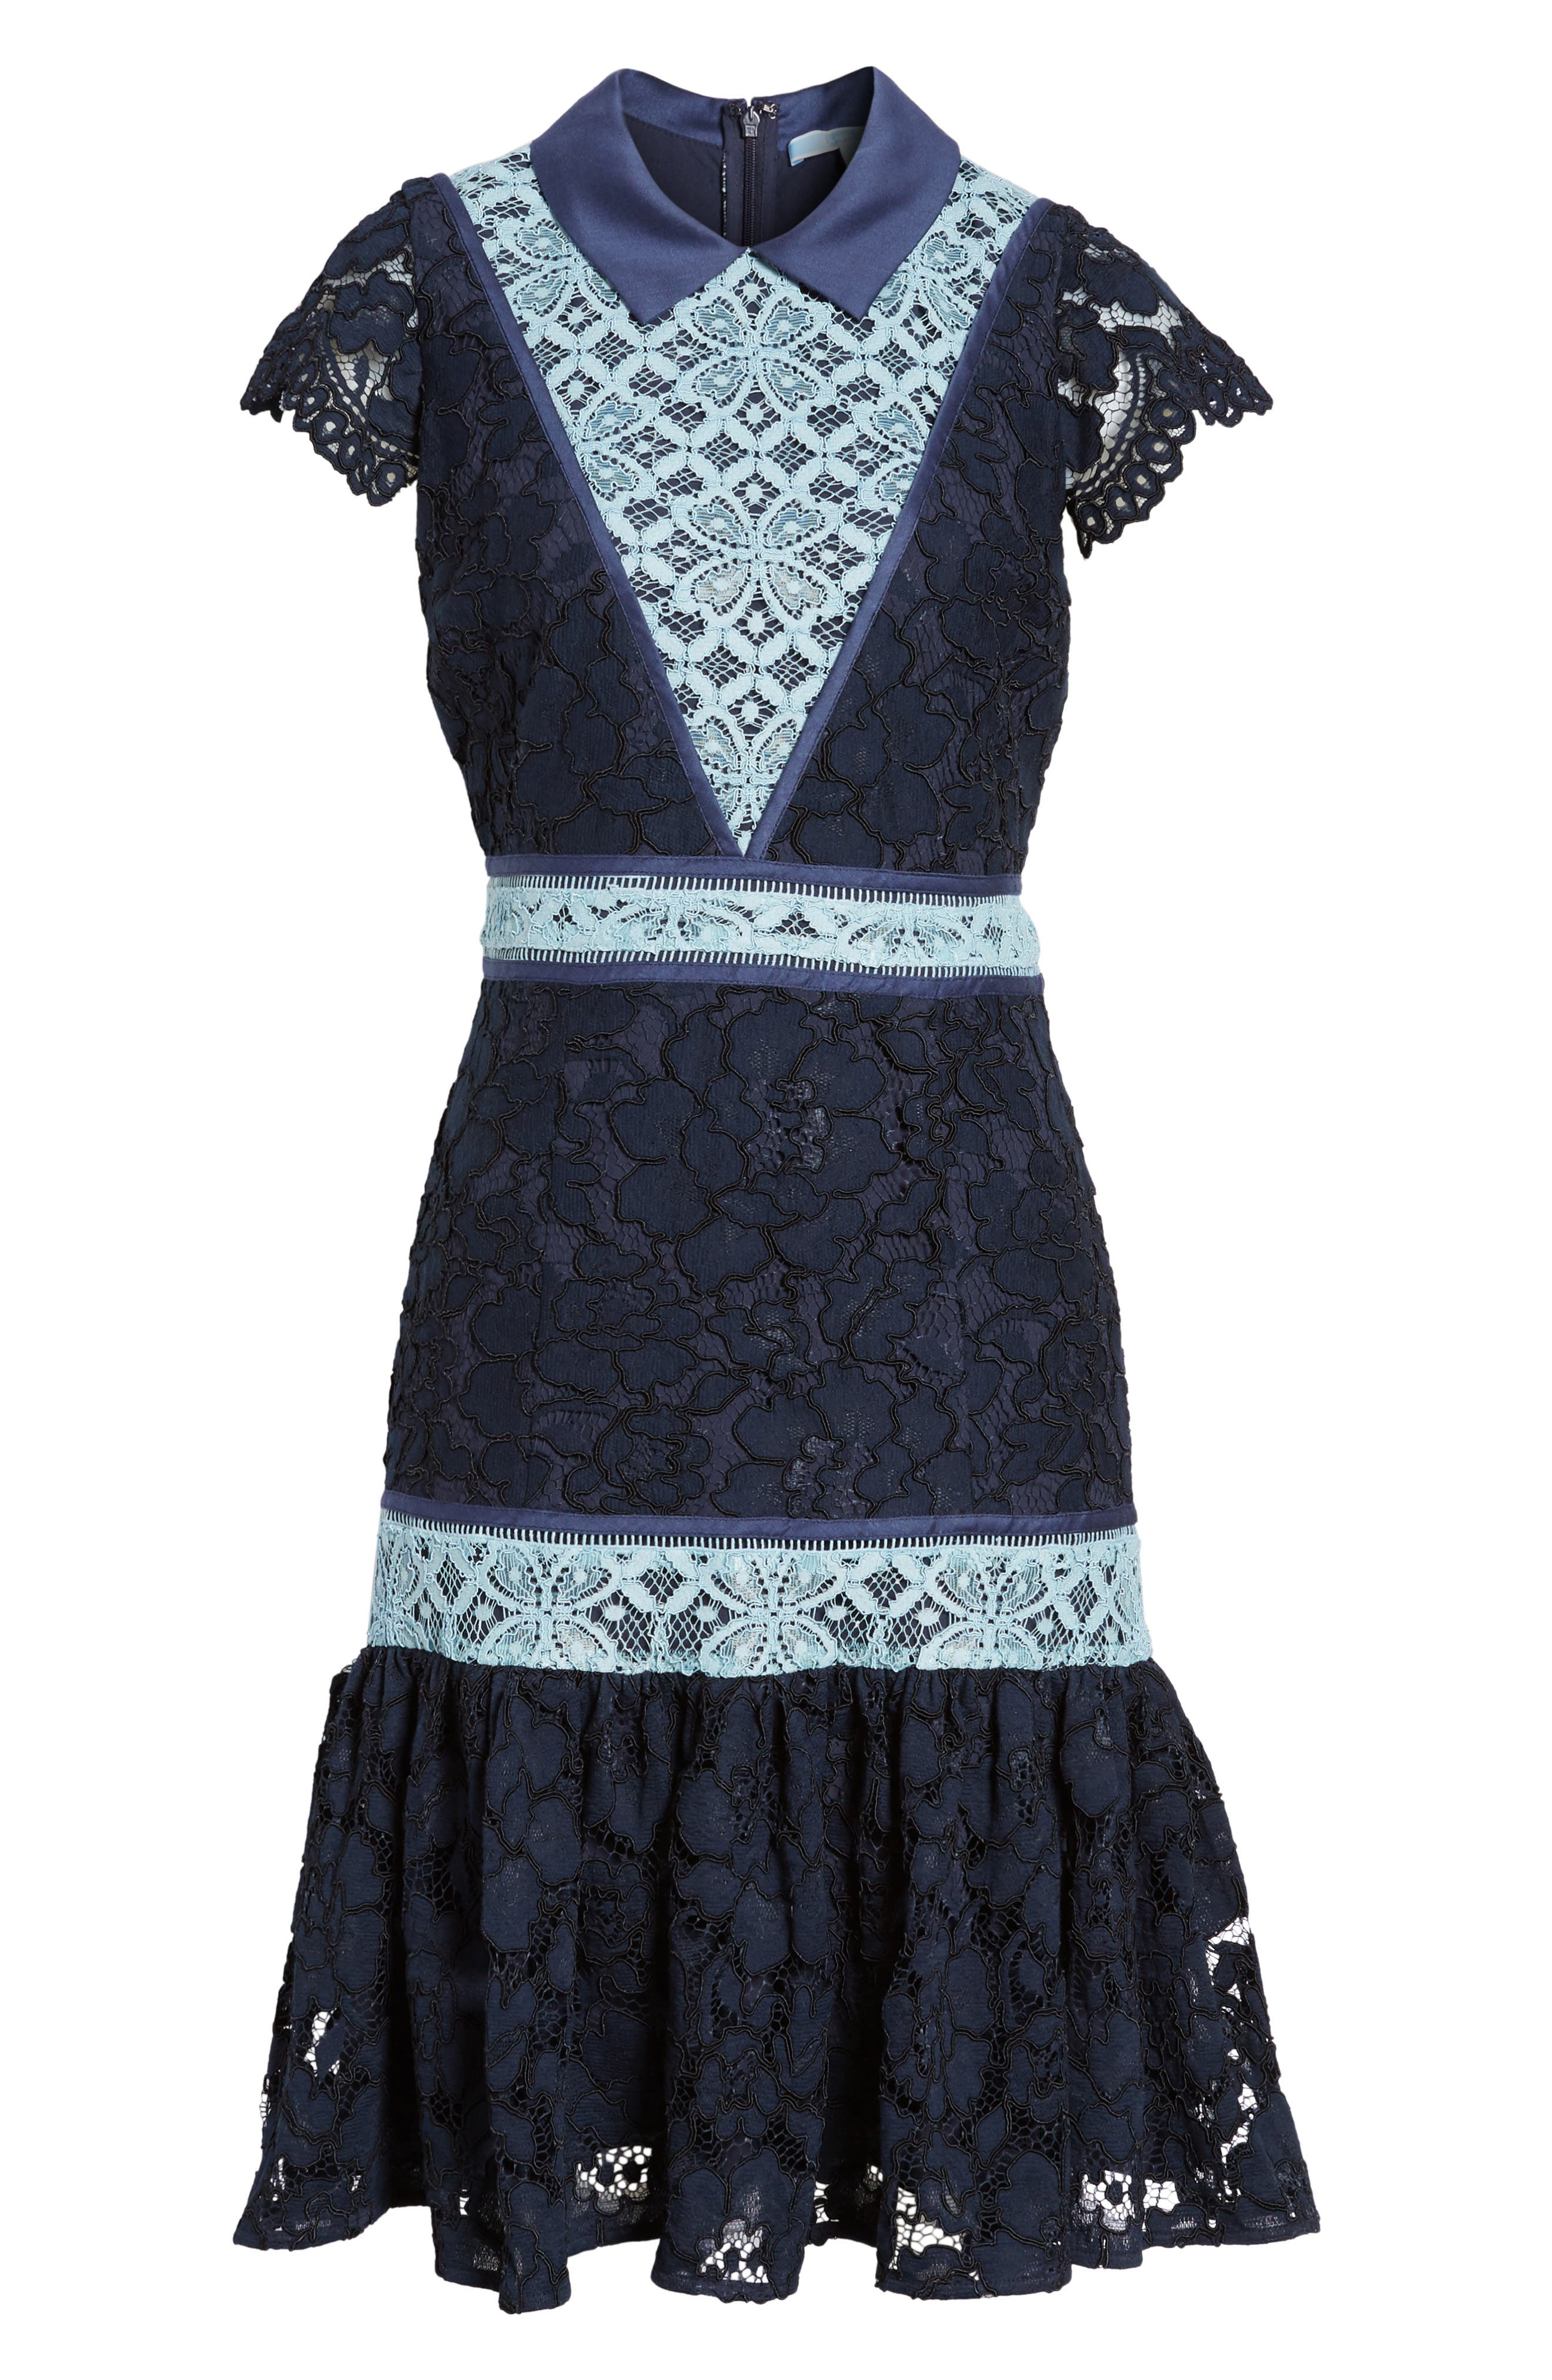 Collared Lace Collection A-Line Dress,                             Alternate thumbnail 6, color,                             432